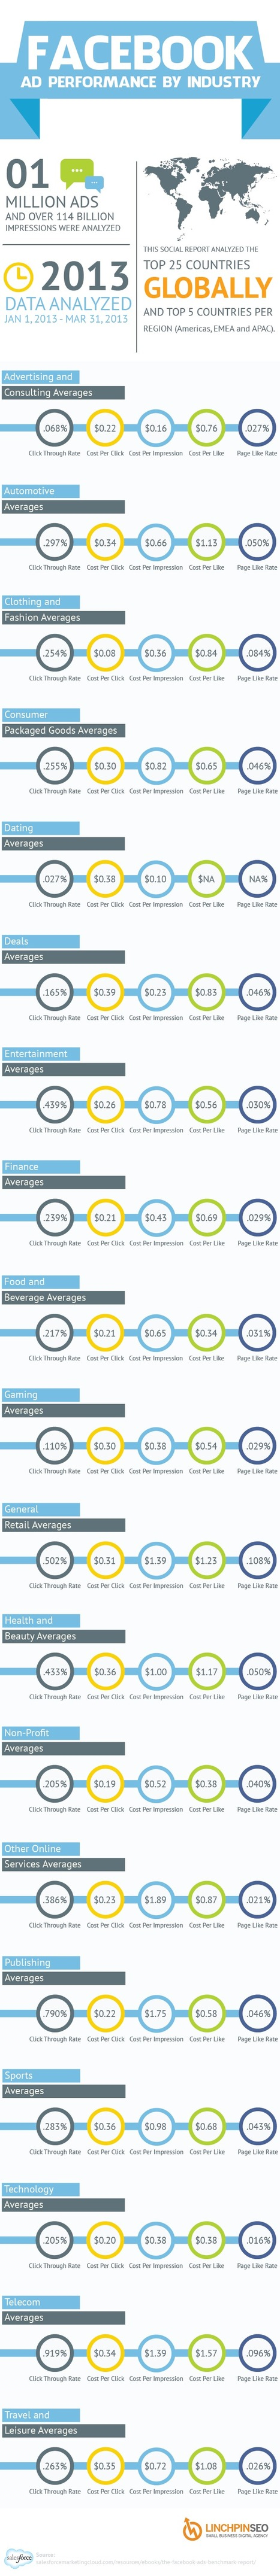 [Infographic] Facebook Ad Performance by Industry | Business for small businesses | Scoop.it